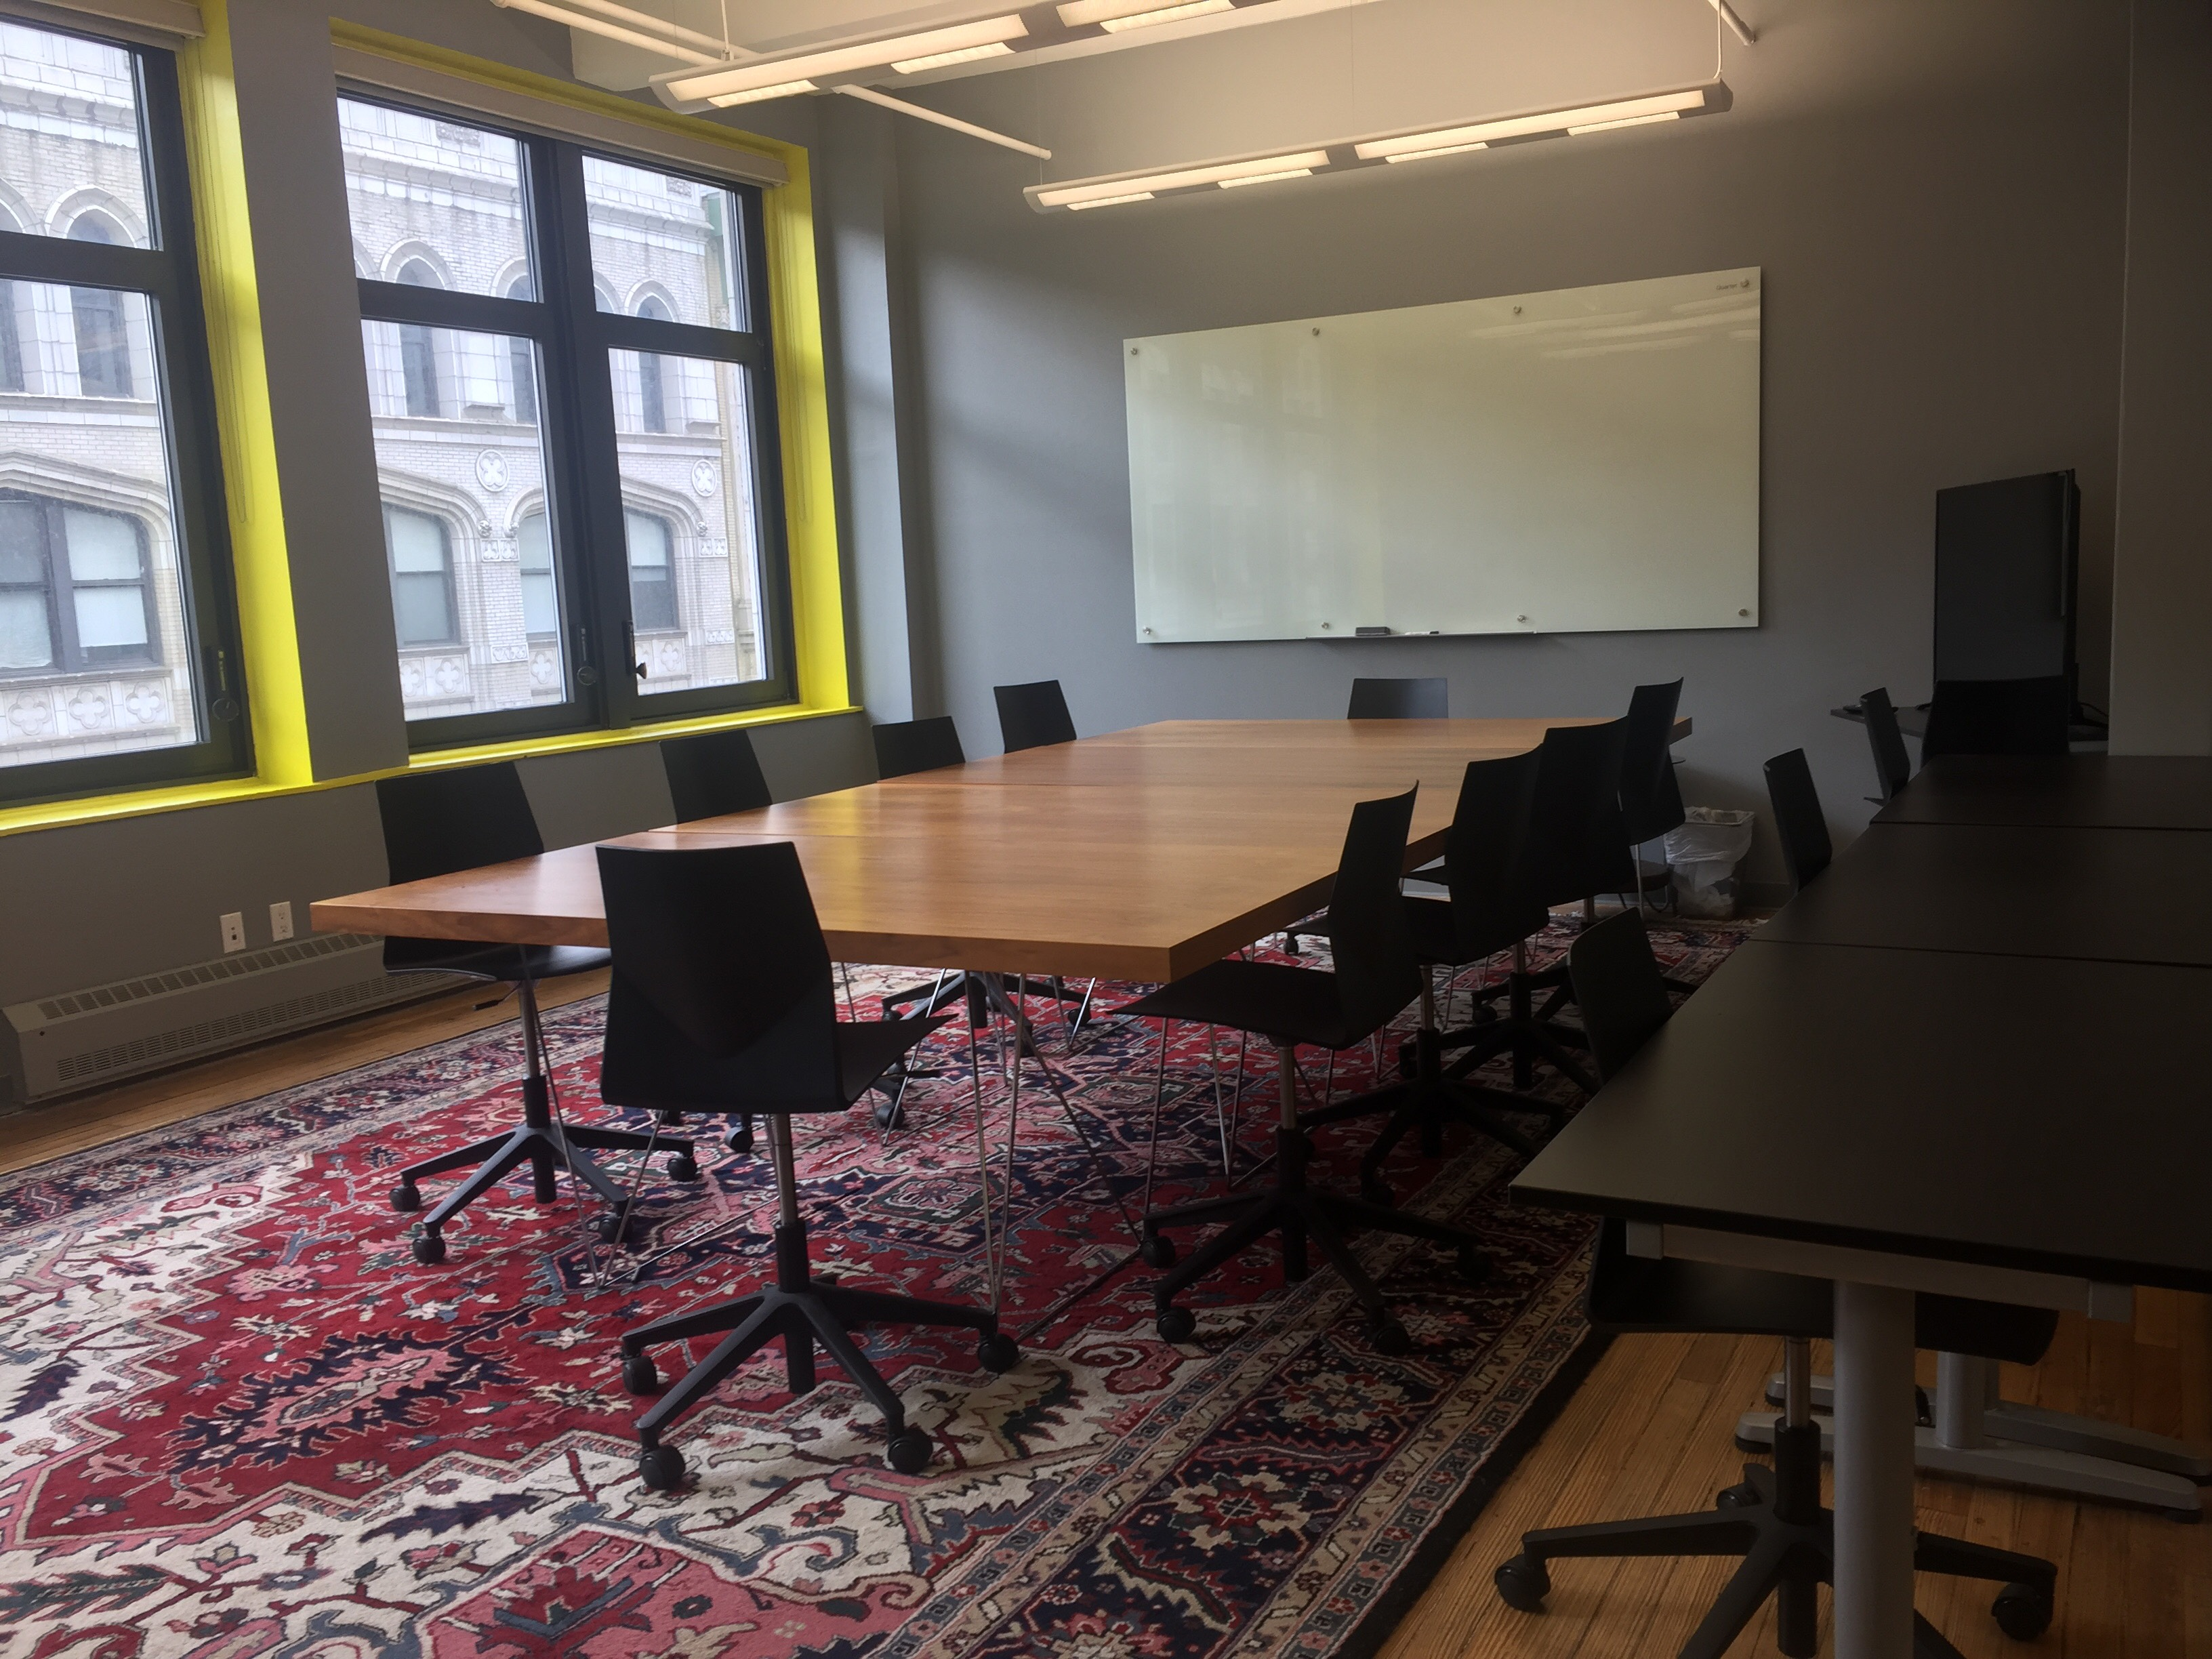 Spacious Flatiron Office Space event space at Voyager in New York City, NYC, NY/NJ Area